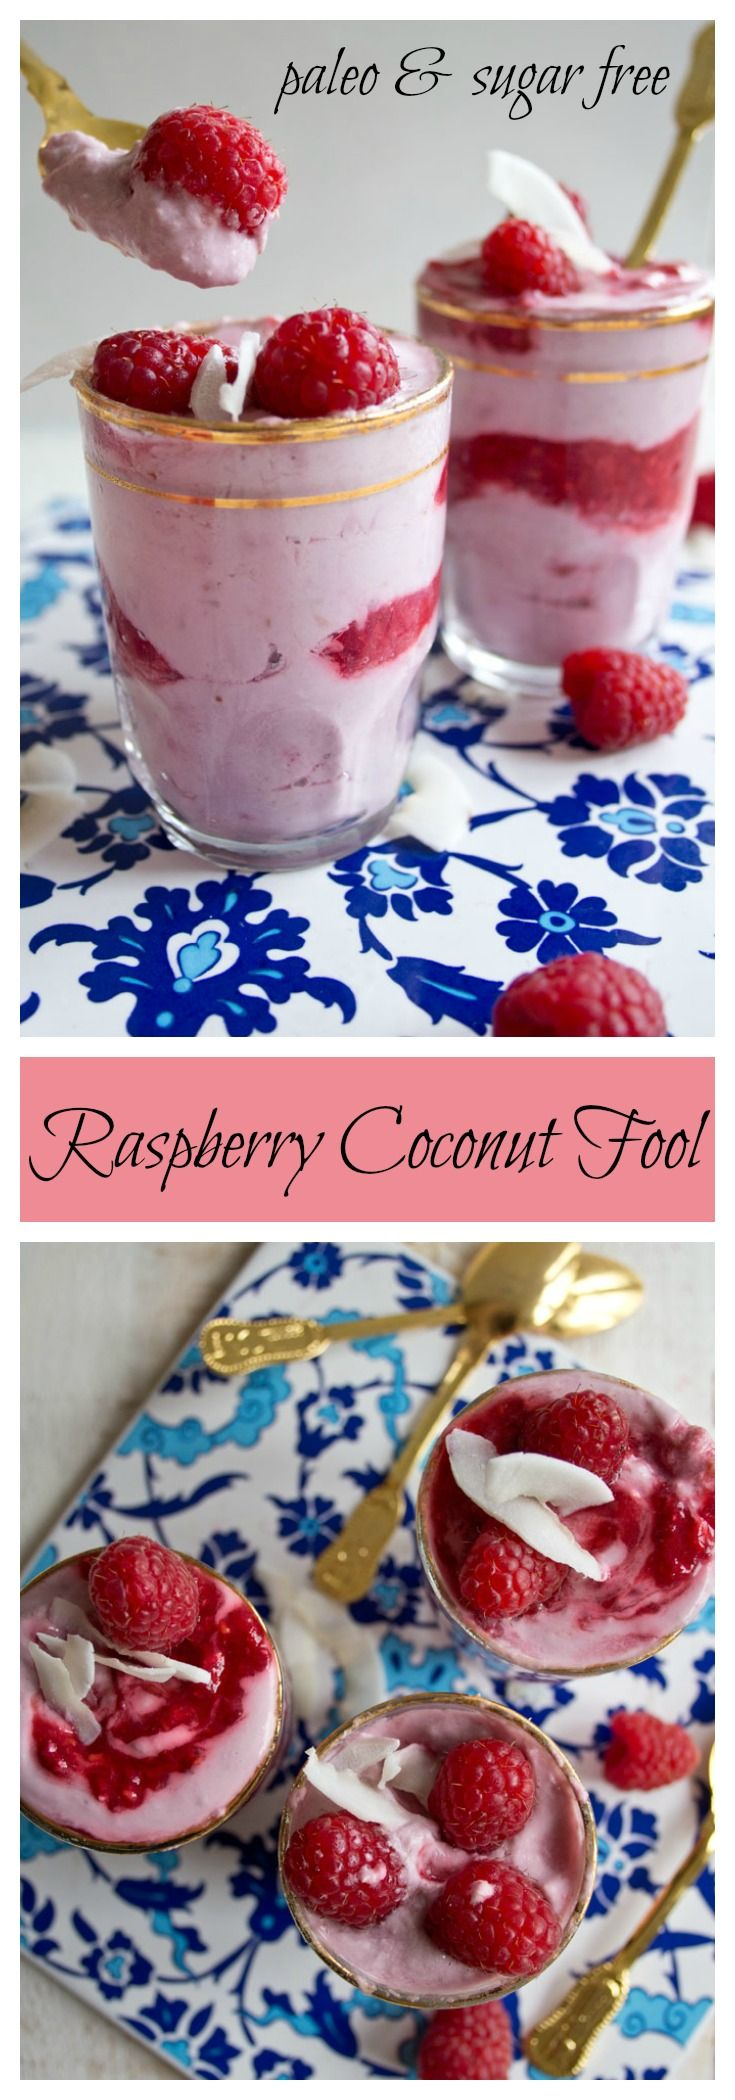 Sweet, tangy and irresistibly delicious. This sugar free and vegan raspberry coconut fool will tantalise your tastebuds.